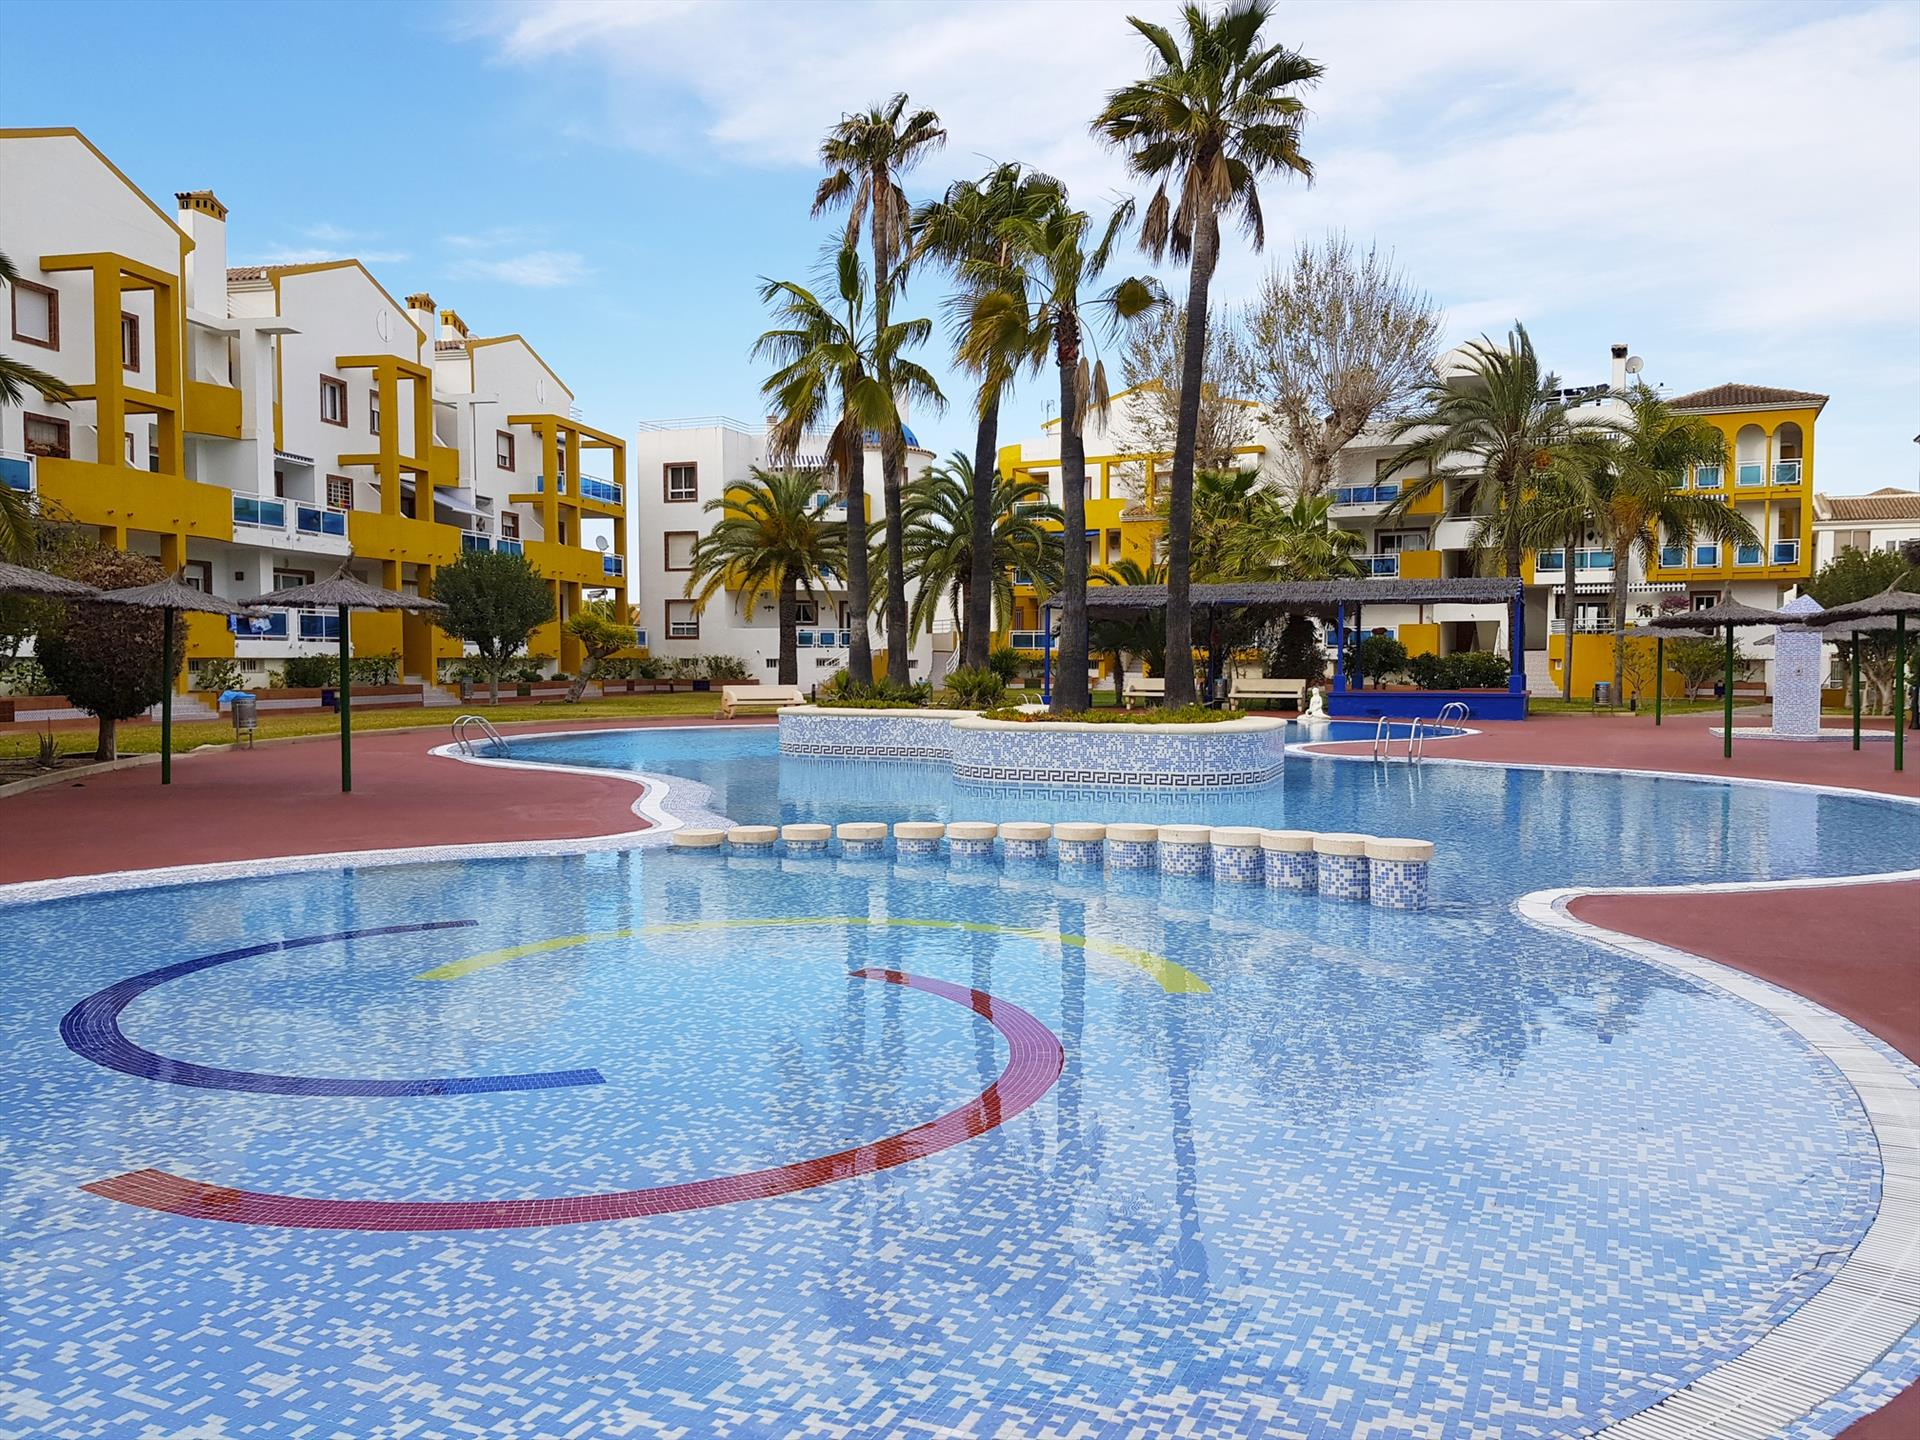 ap102 San Fernando Joan de Joanes, Beautiful and romantic apartment in Oliva, on the Costa Blanca, Spain  with communal pool for 4 persons.....